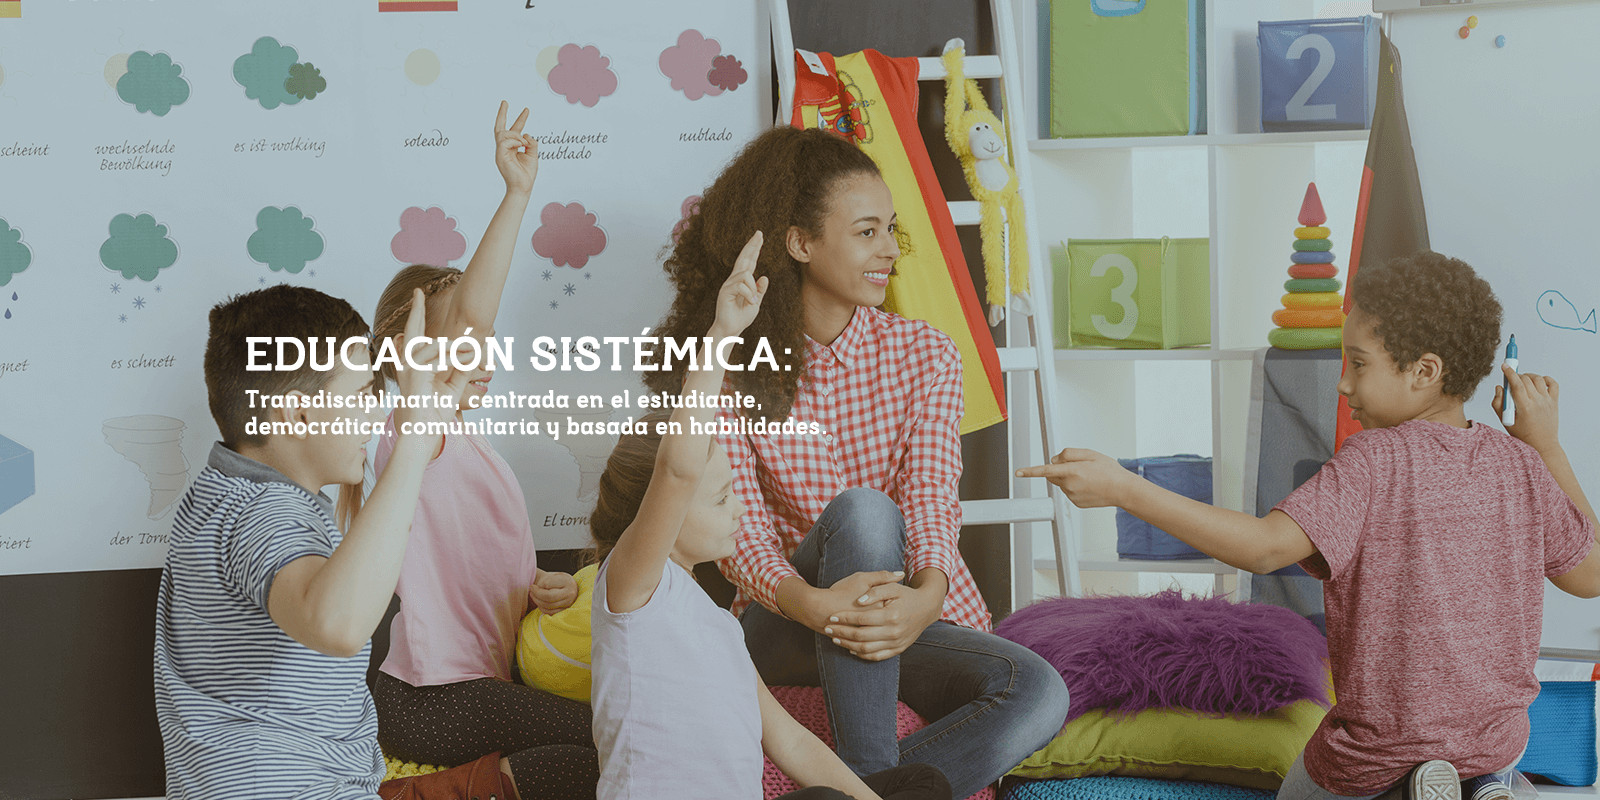 Slider Home: EDUCACION SISTEMICA ES